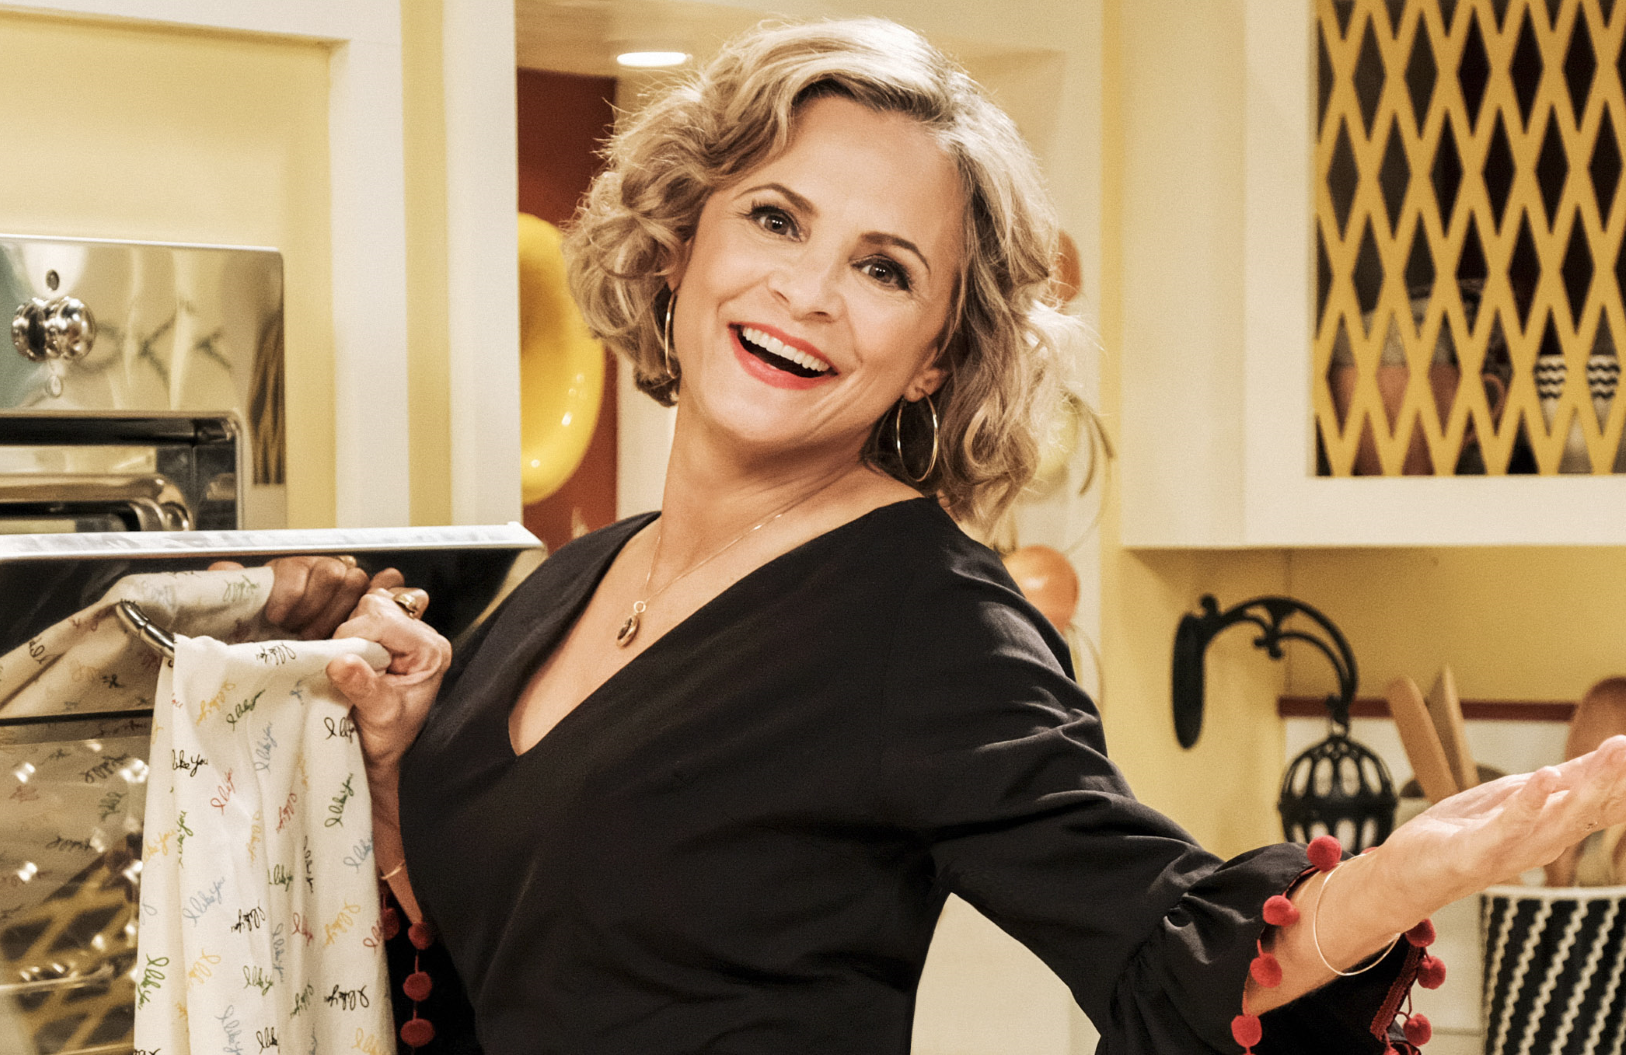 Amy Sedaris stars in At Home with Amy Sedaris on TruTV